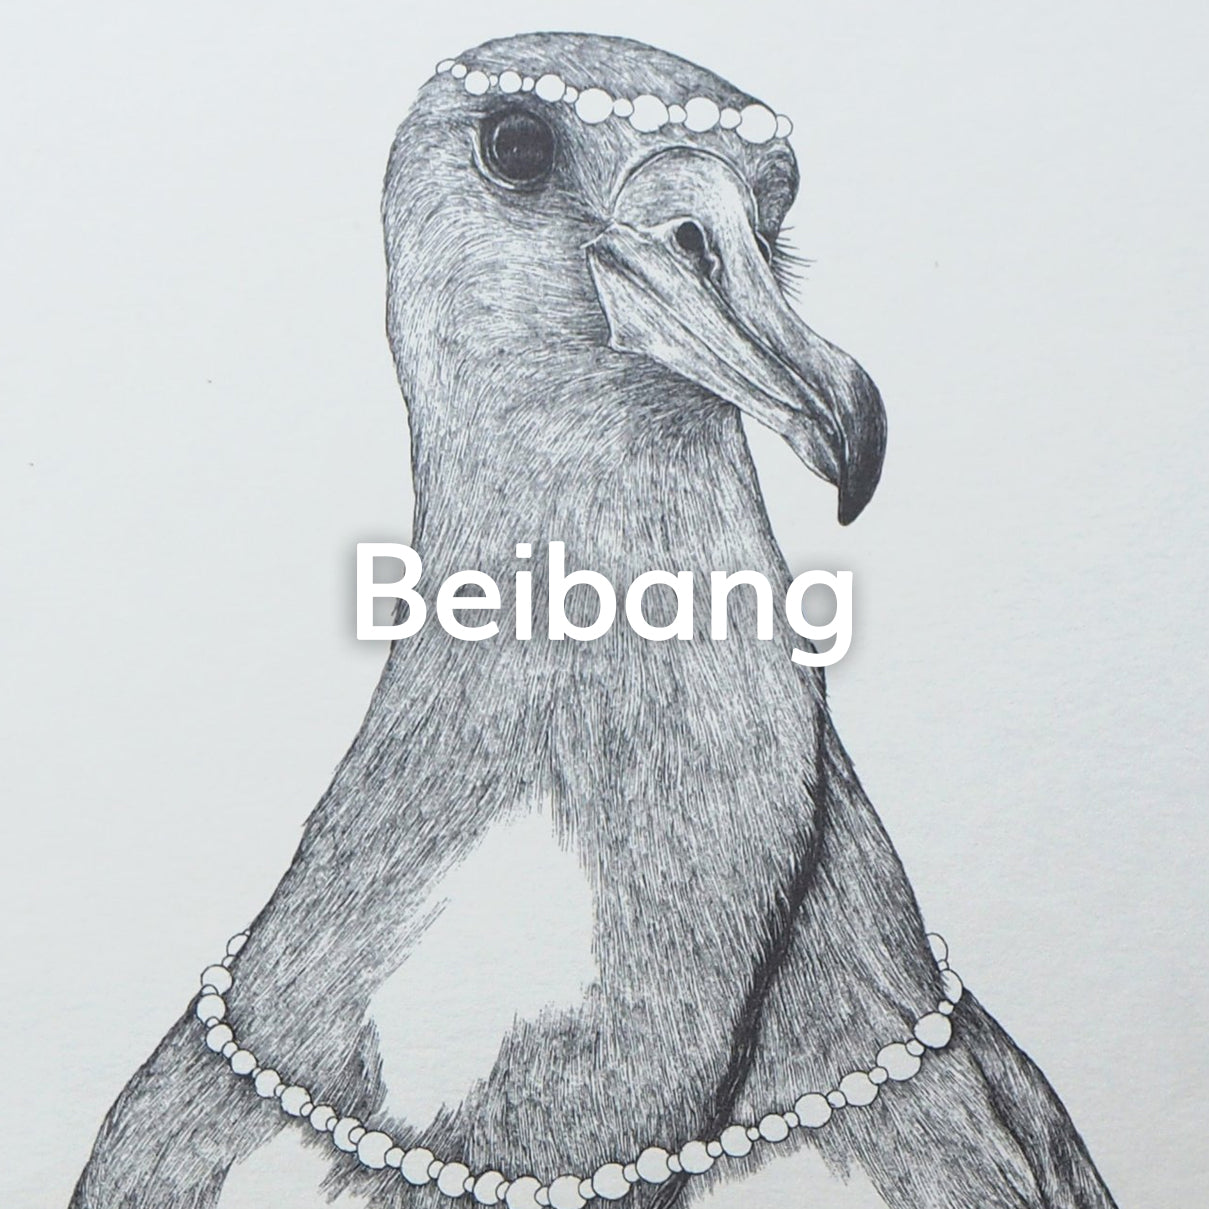 Chinese artist Beibang sketchbooks, postcards and poster prints collection